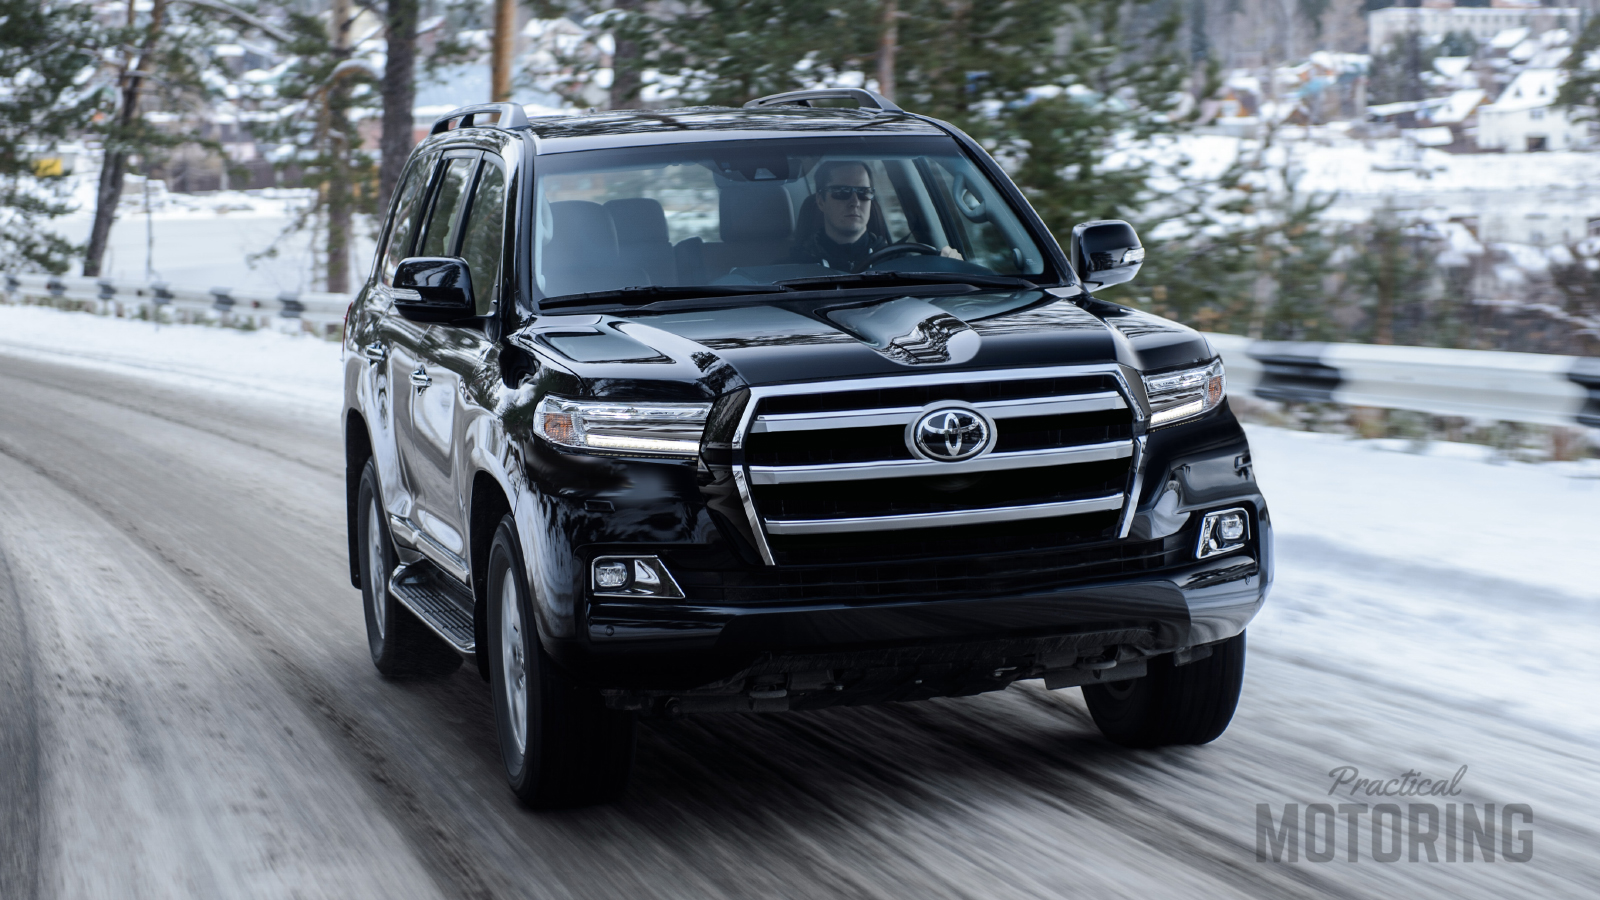 2020 Toyota Land Cruiser Diesel Review and Release date